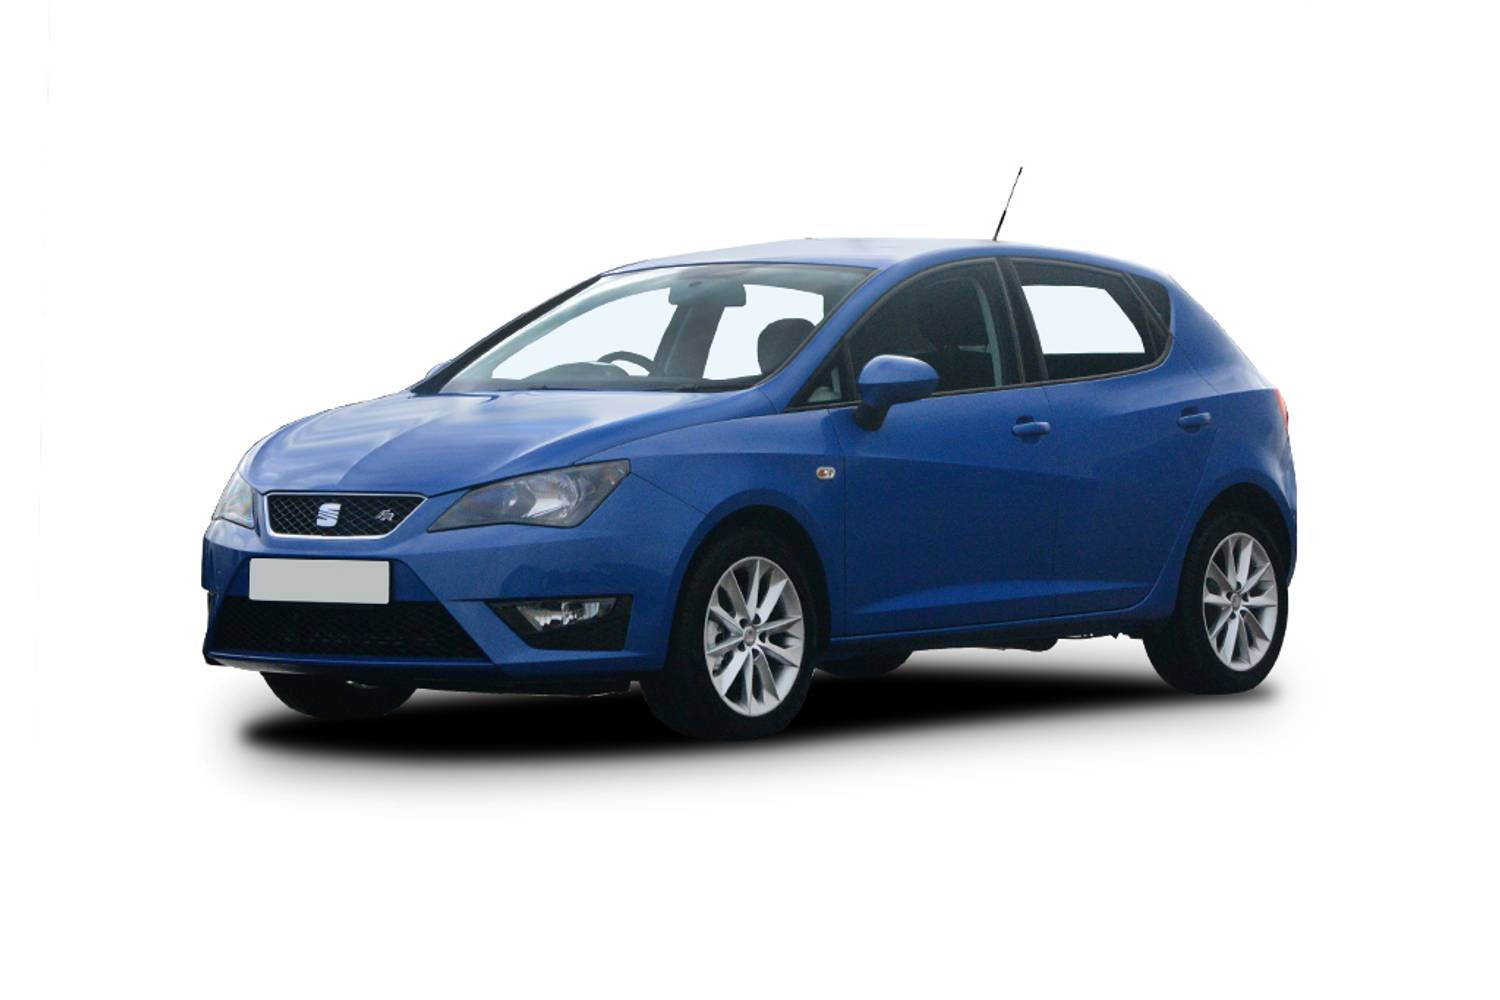 new seat ibiza hatchback special edition 1 0 sol 5 door 2016 for sale. Black Bedroom Furniture Sets. Home Design Ideas